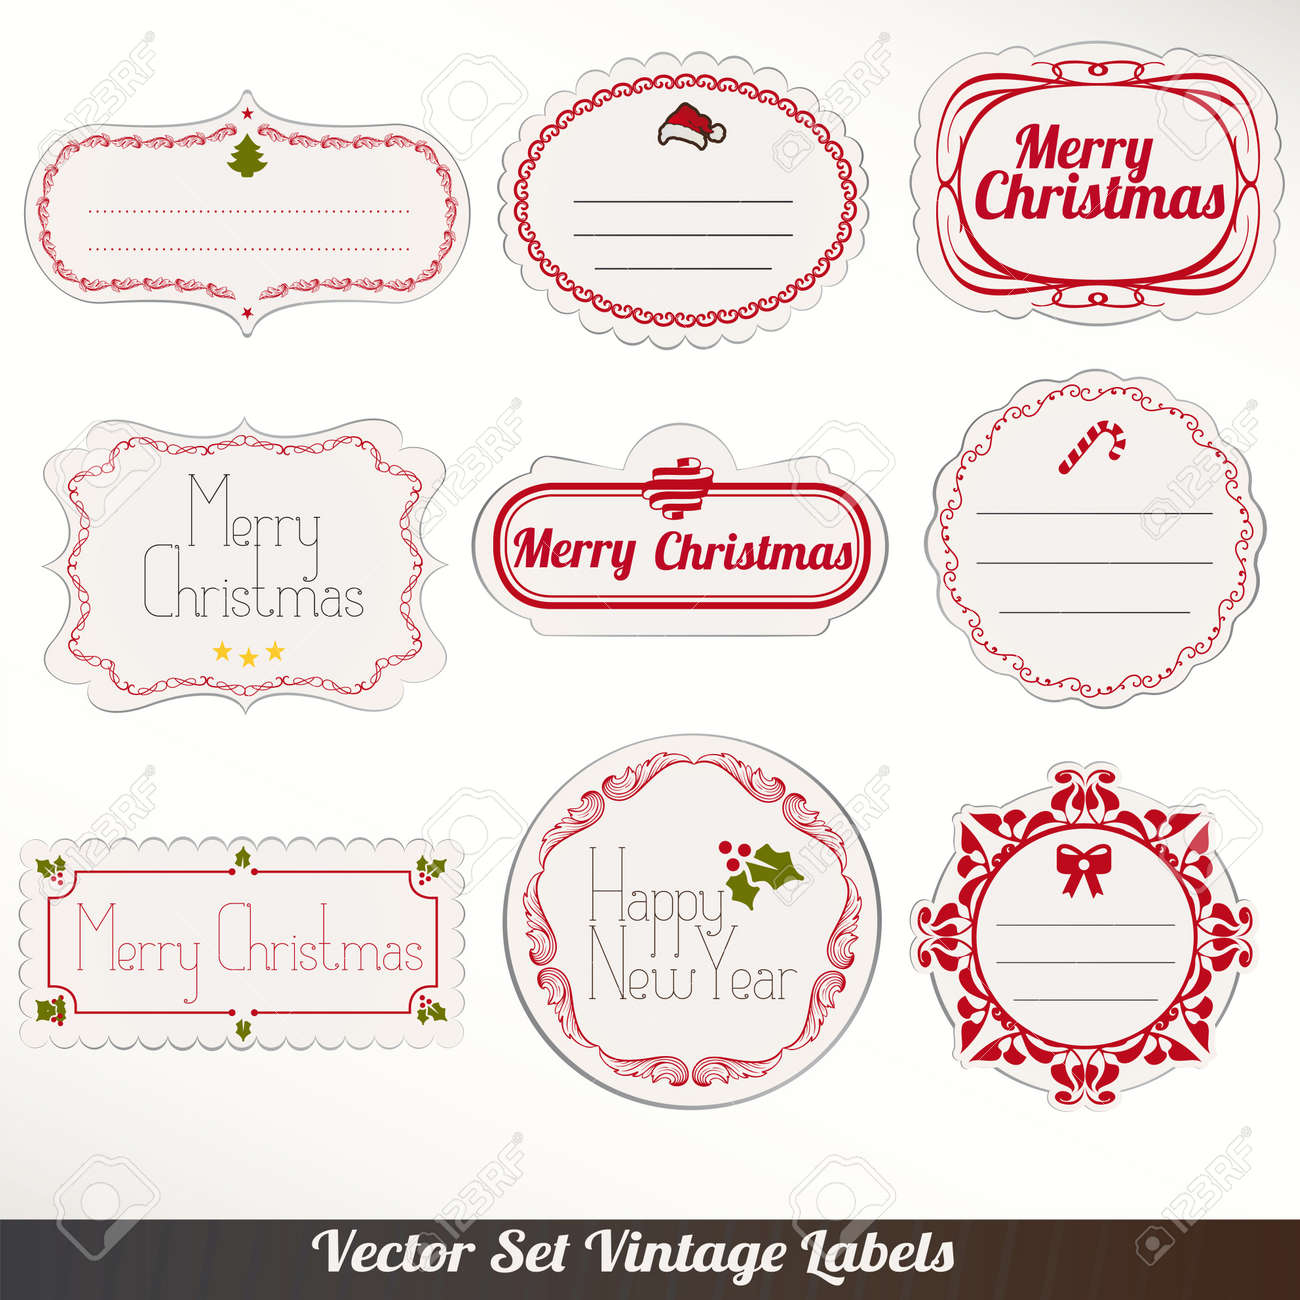 set of vector christmas ribbons old dirty paper textures and vintage new year labels